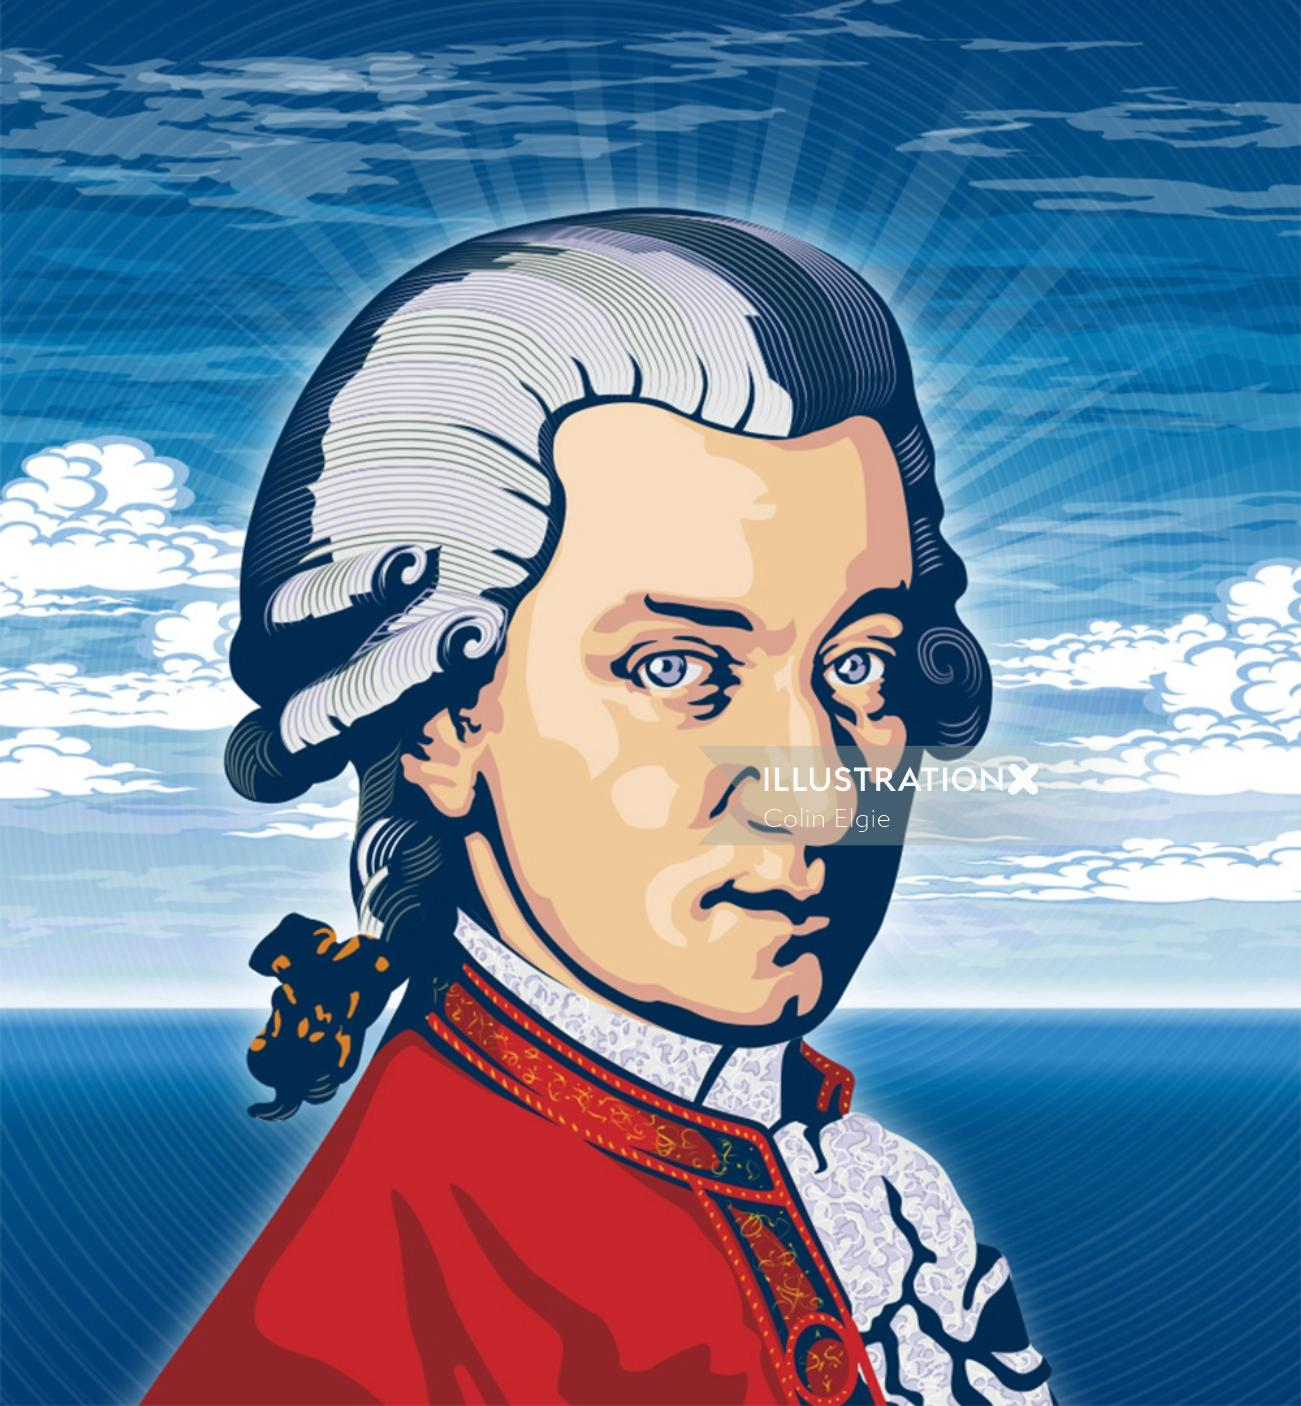 A portrait of Mozart in contemporary style